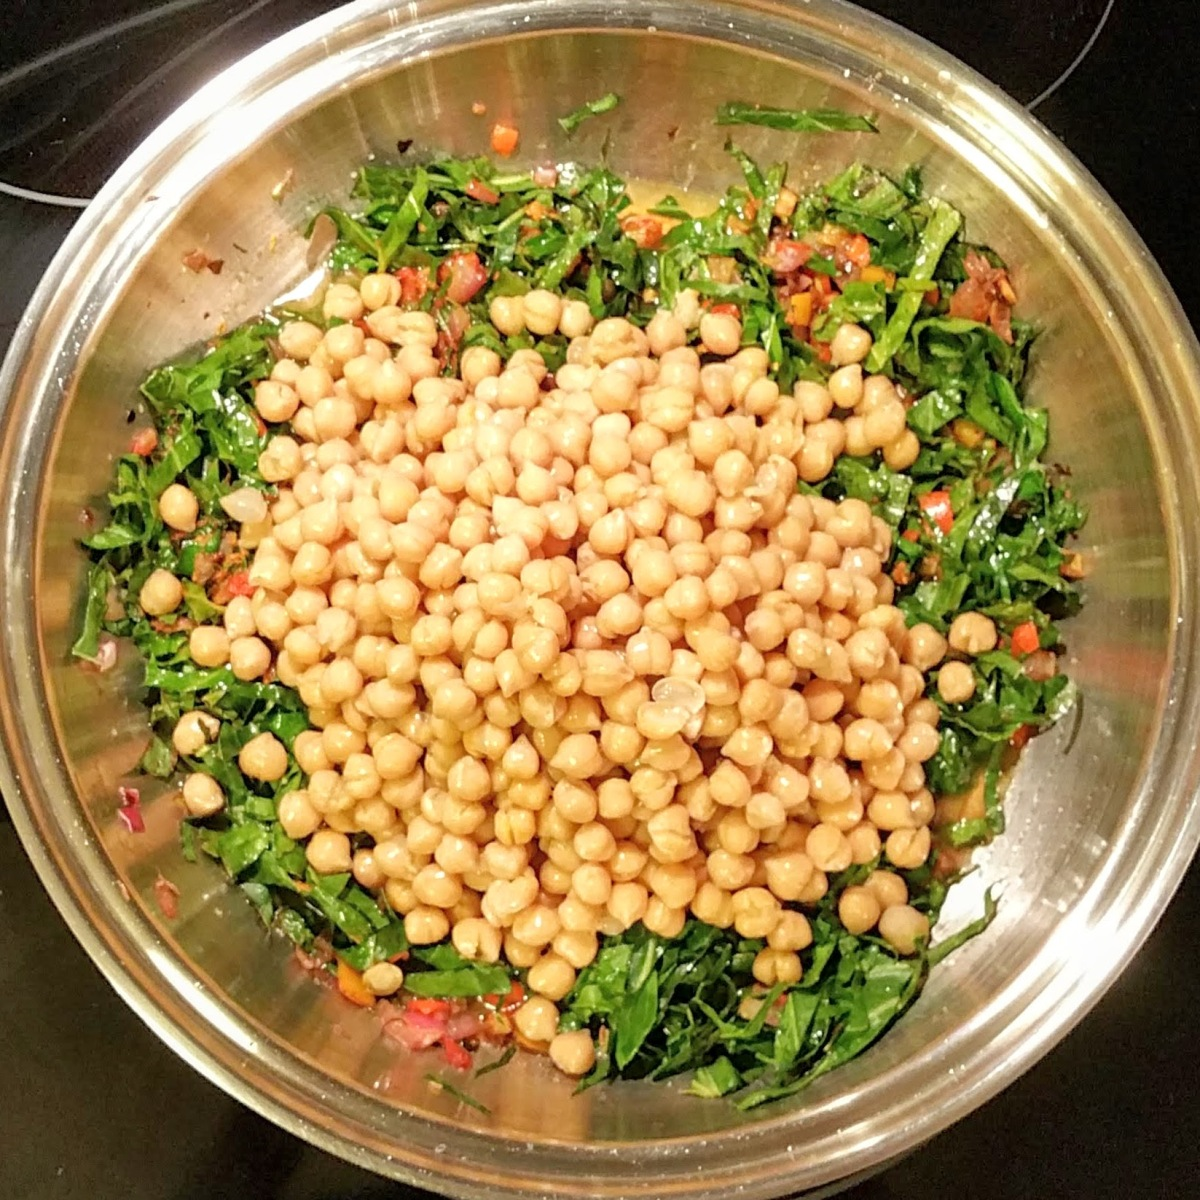 Collard Greens Cook 10 add chickpeas